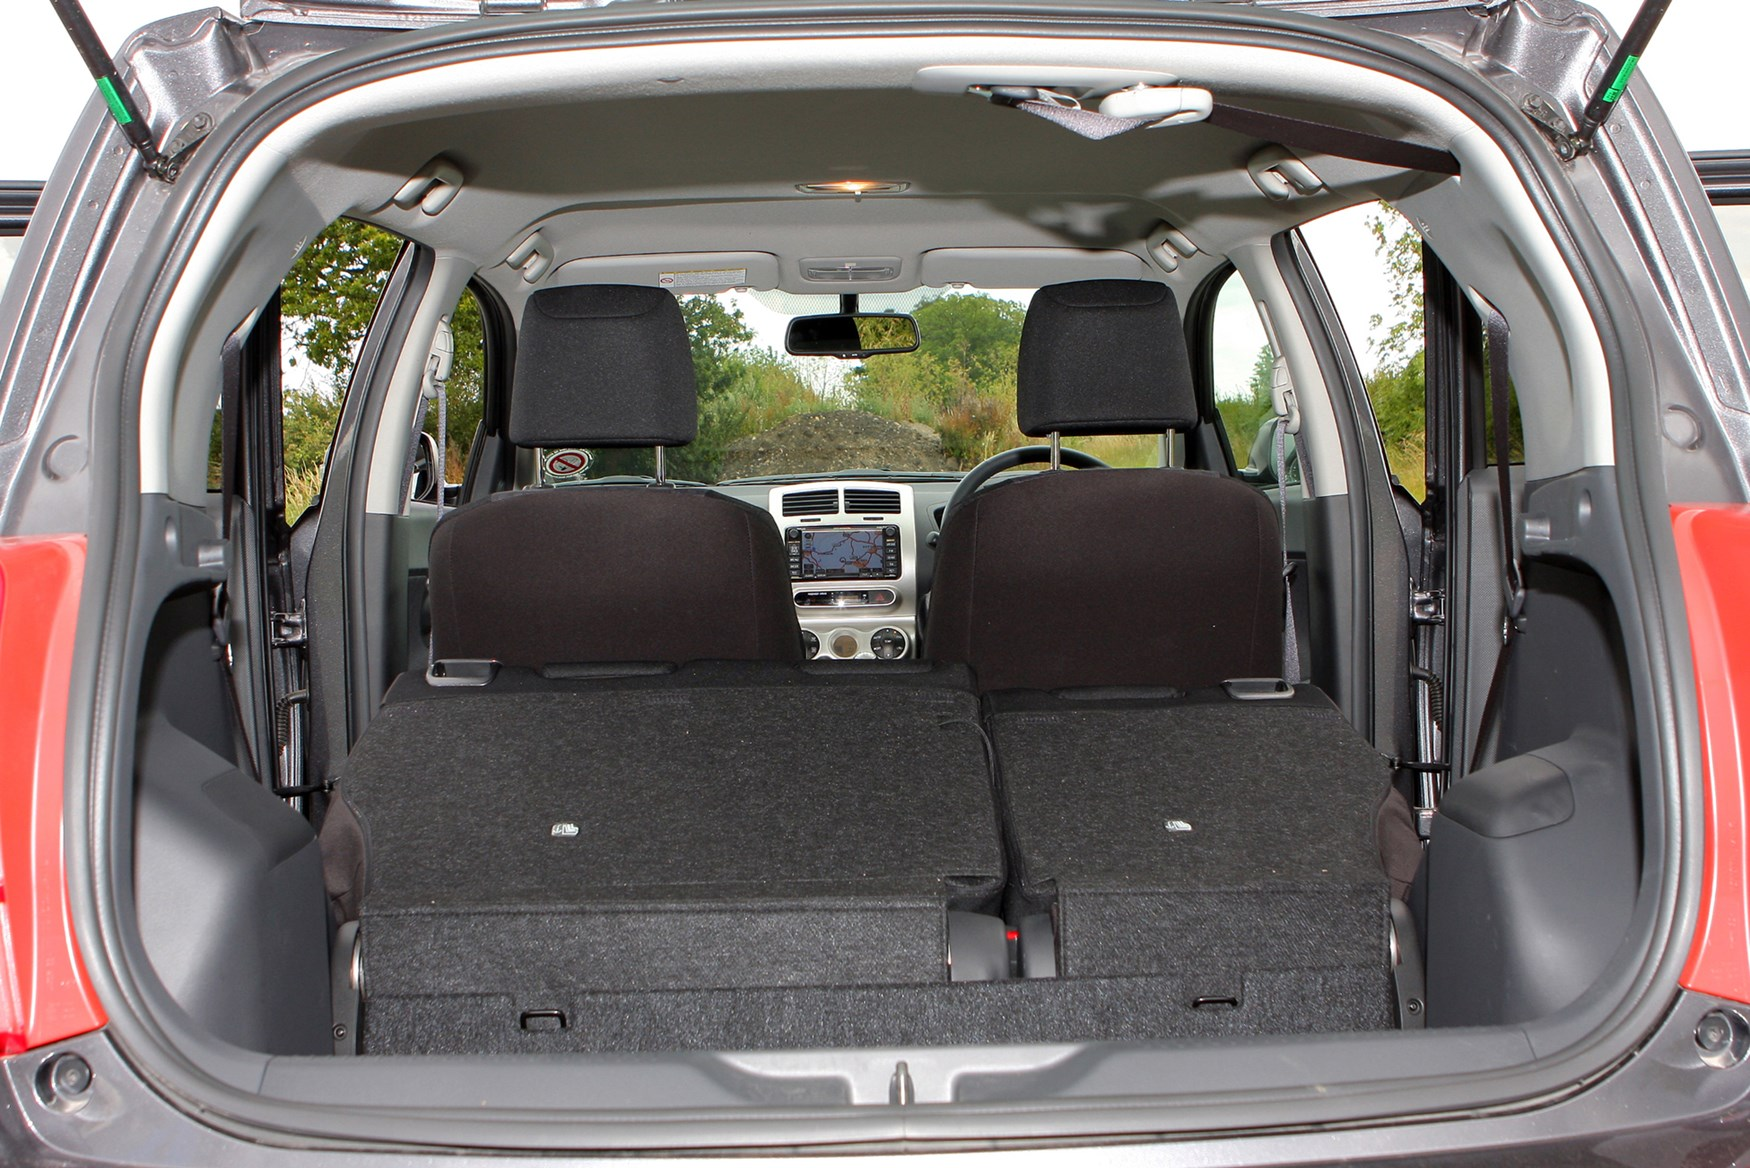 toyota urban cruiser estate review 2009 2012 parkers. Black Bedroom Furniture Sets. Home Design Ideas